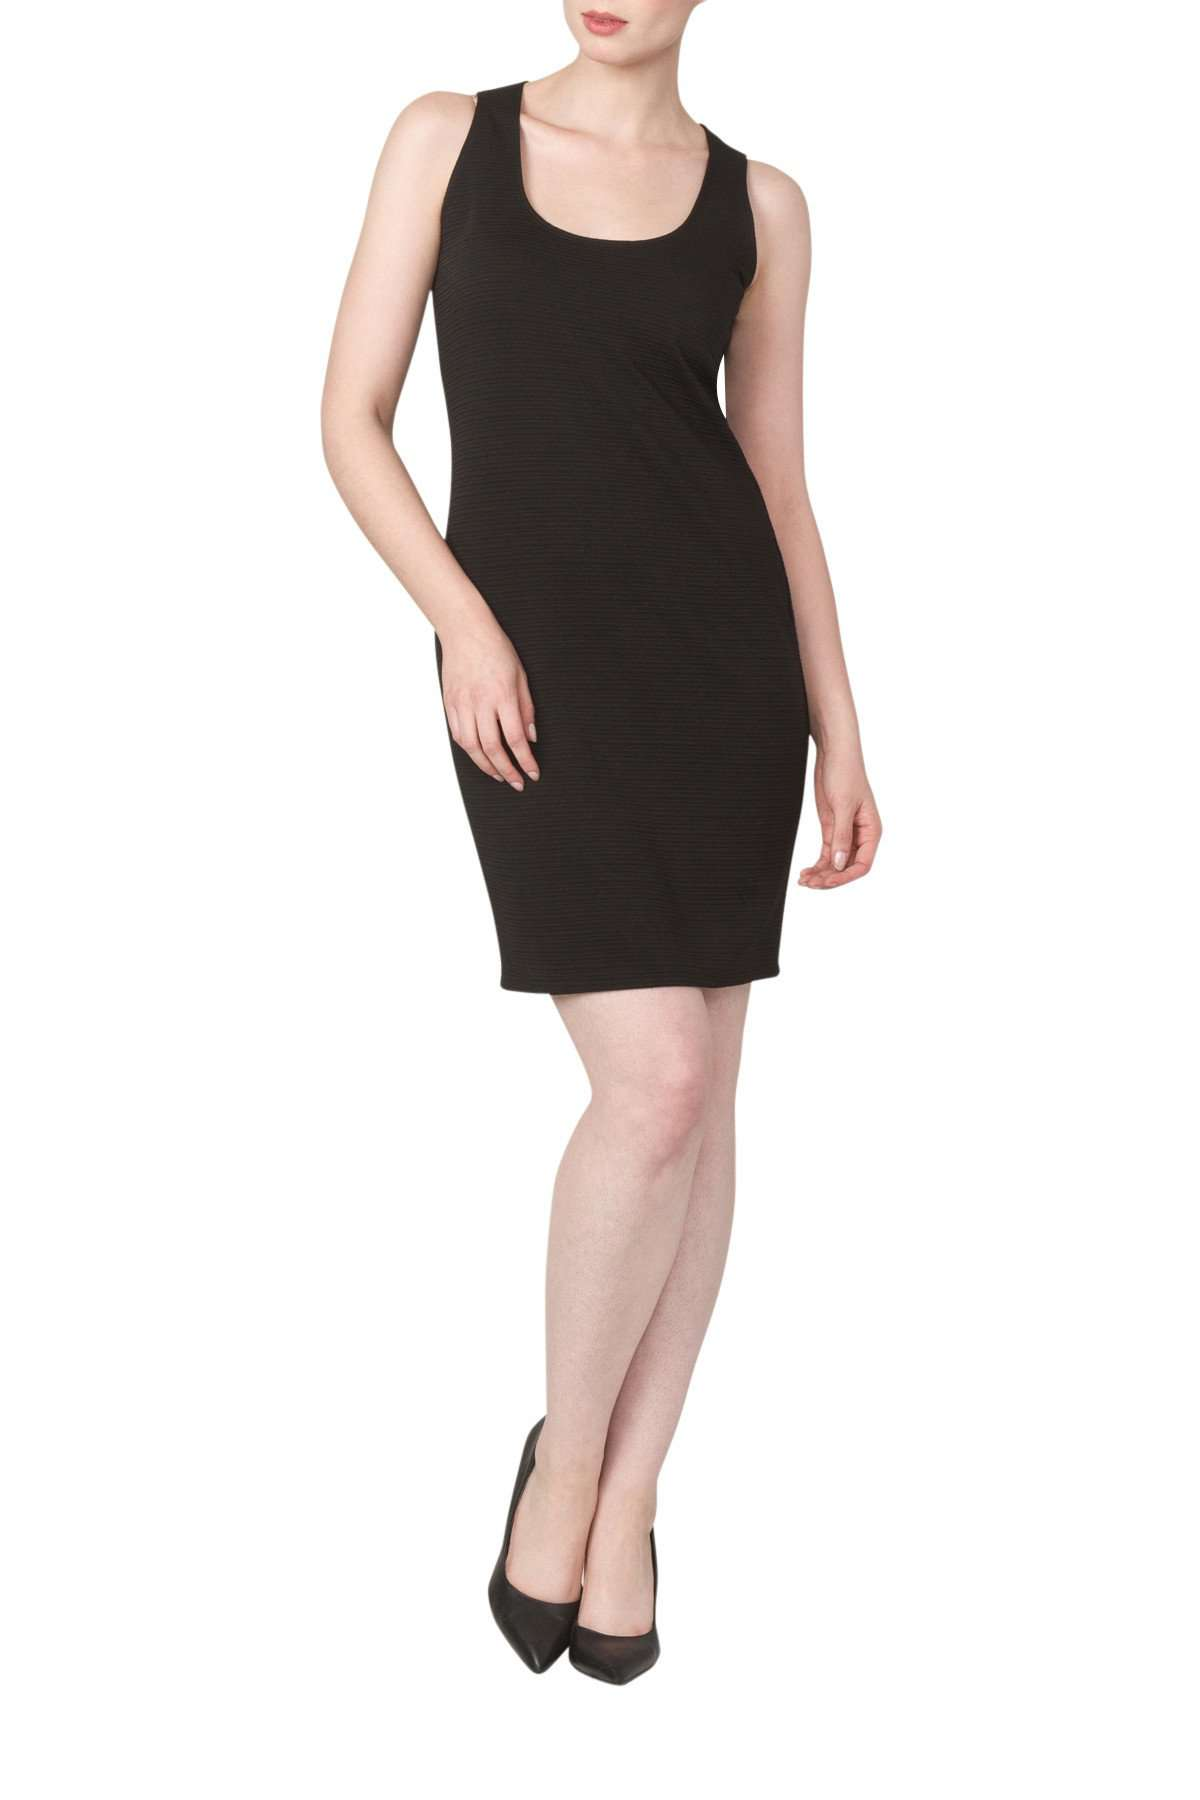 Women's Black Tank Dress - Yvonne Marie